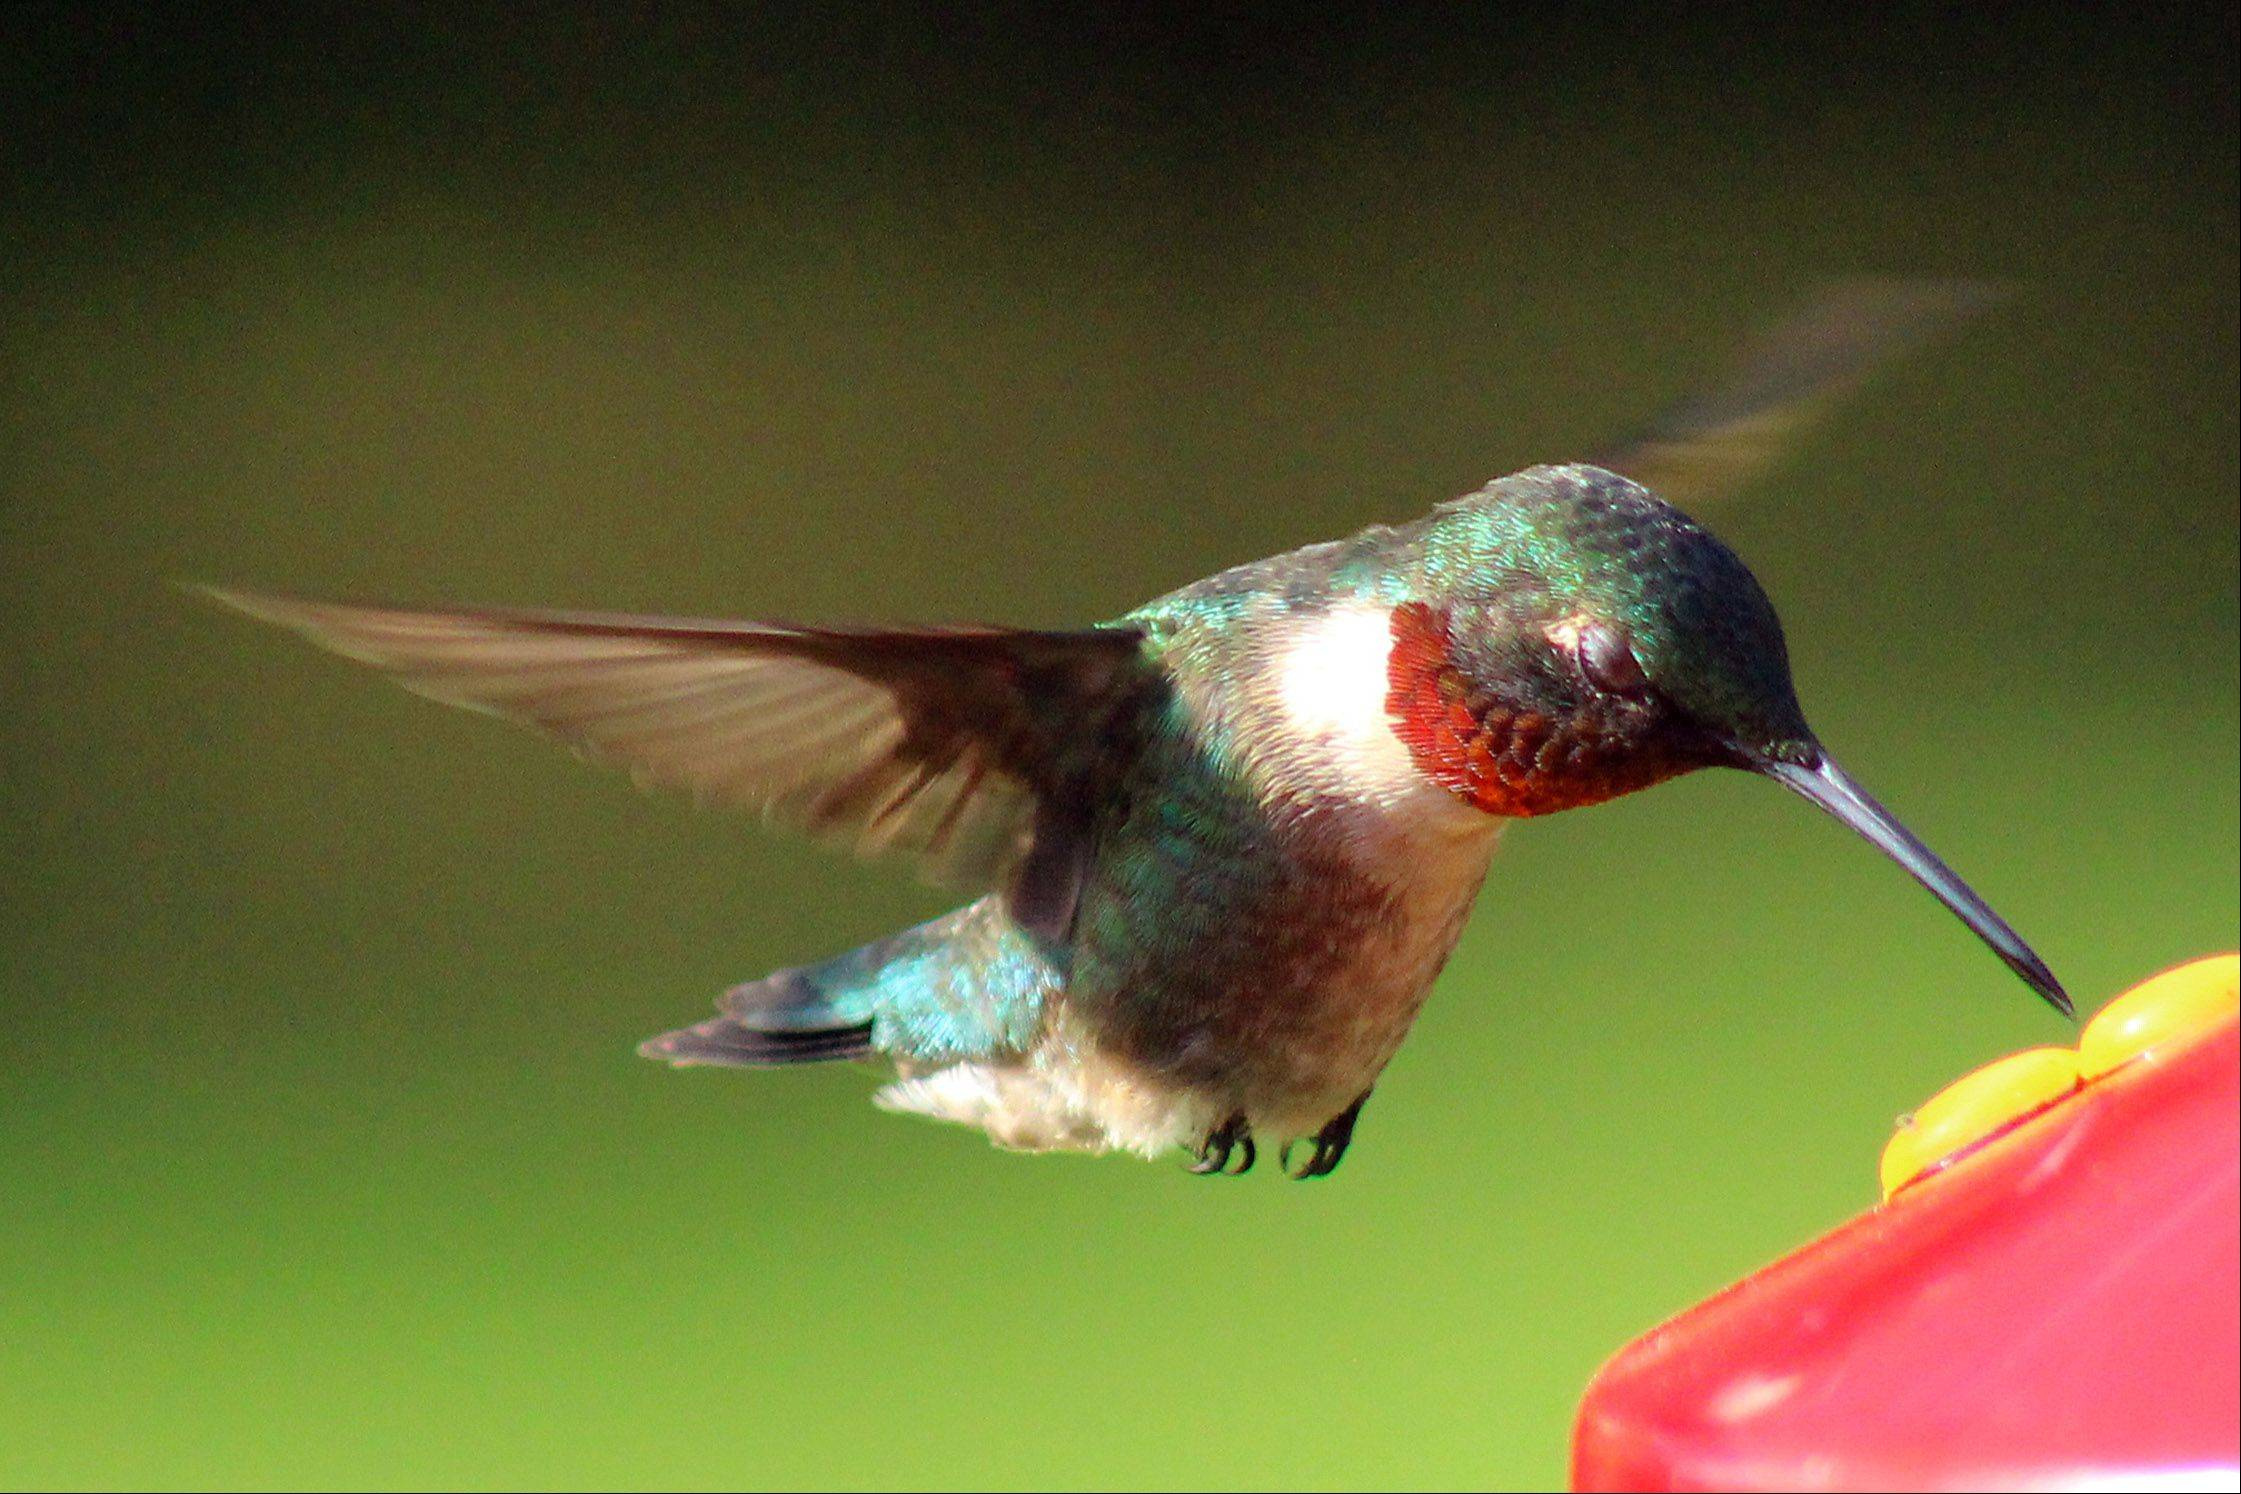 A hummingbird feeds in a Gurnee backyard.